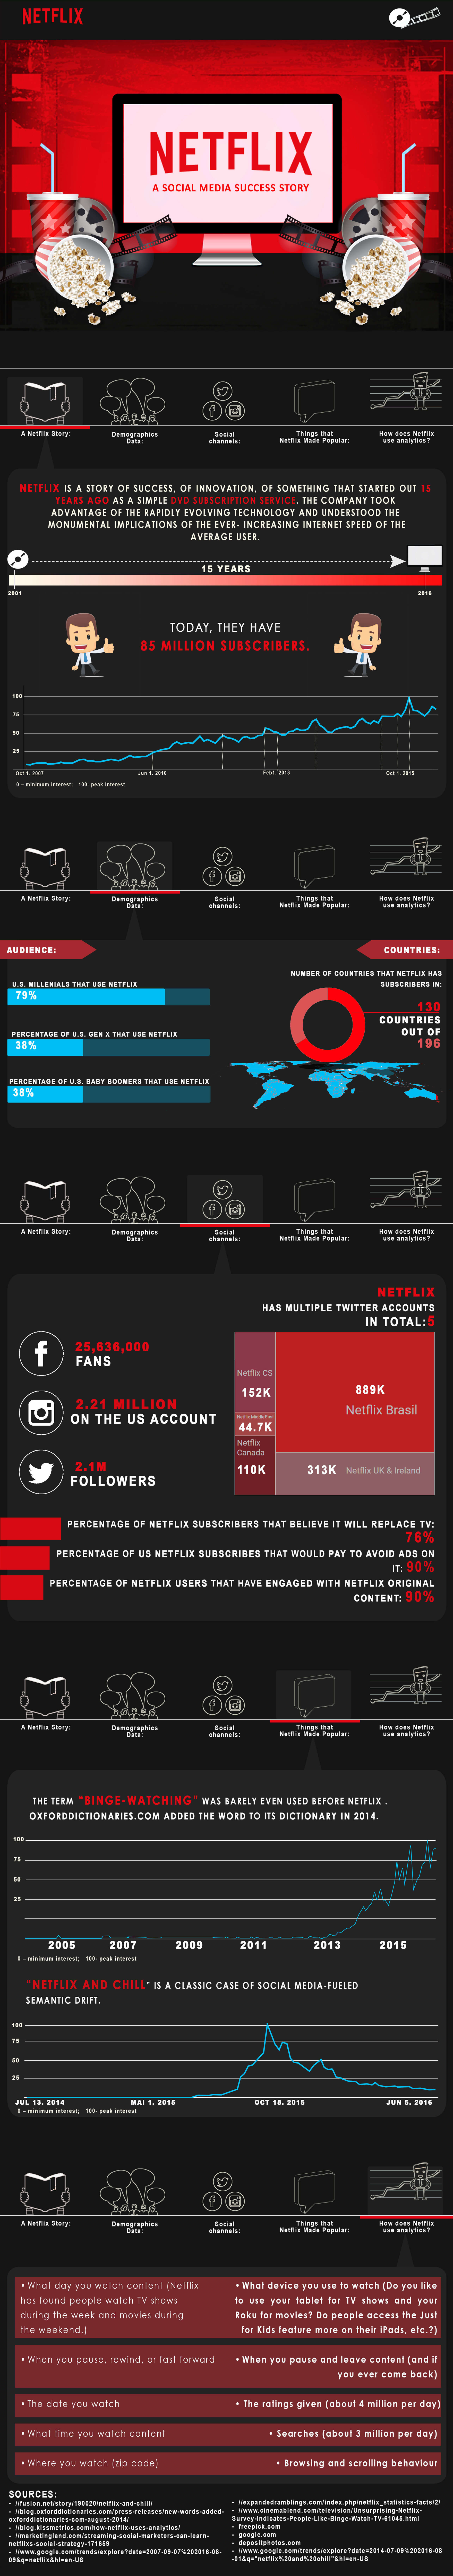 Netflix rise to success infographic